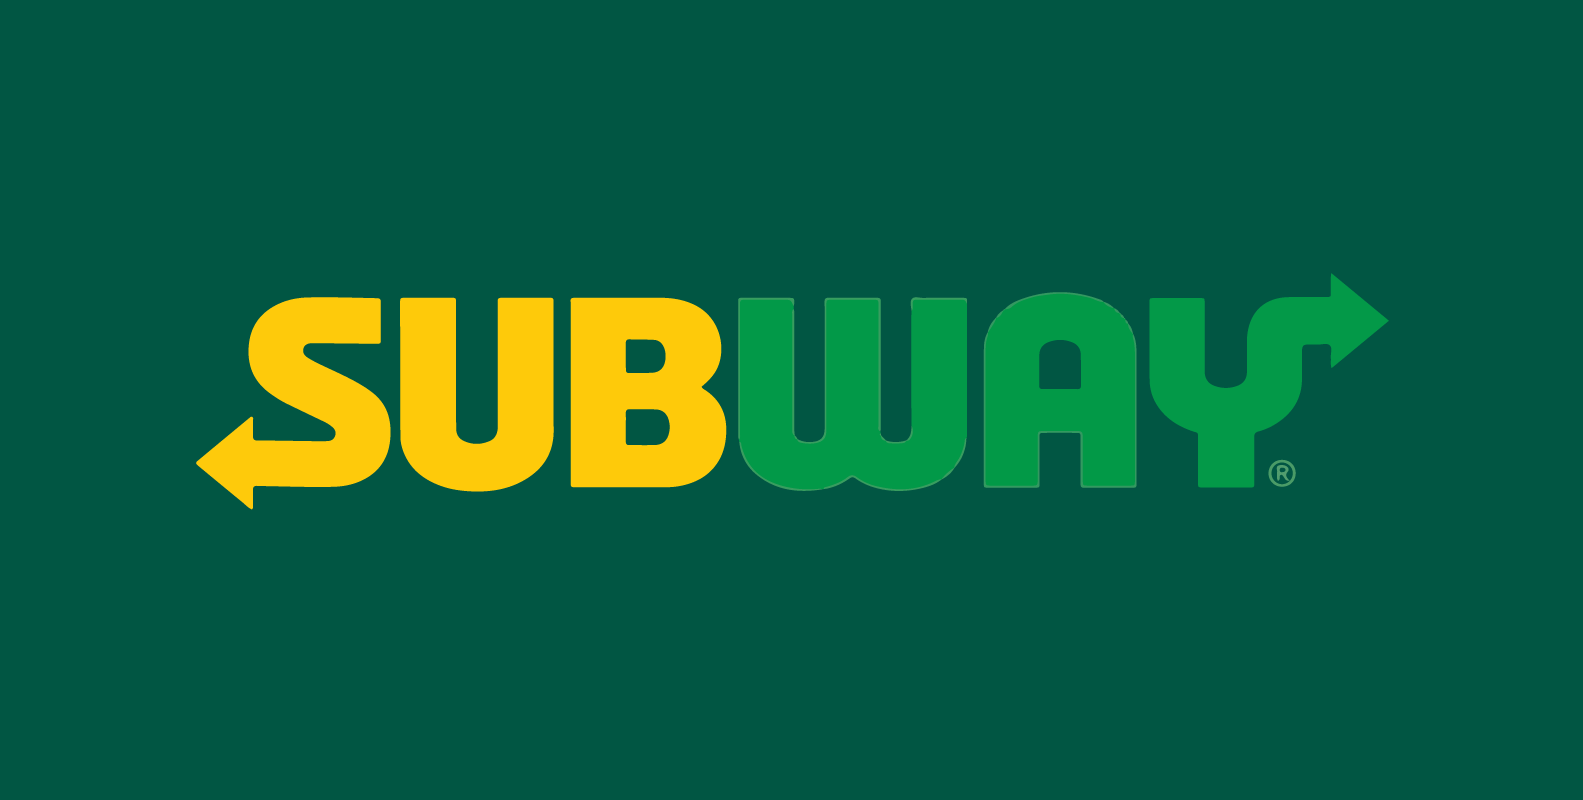 the new york subway logo